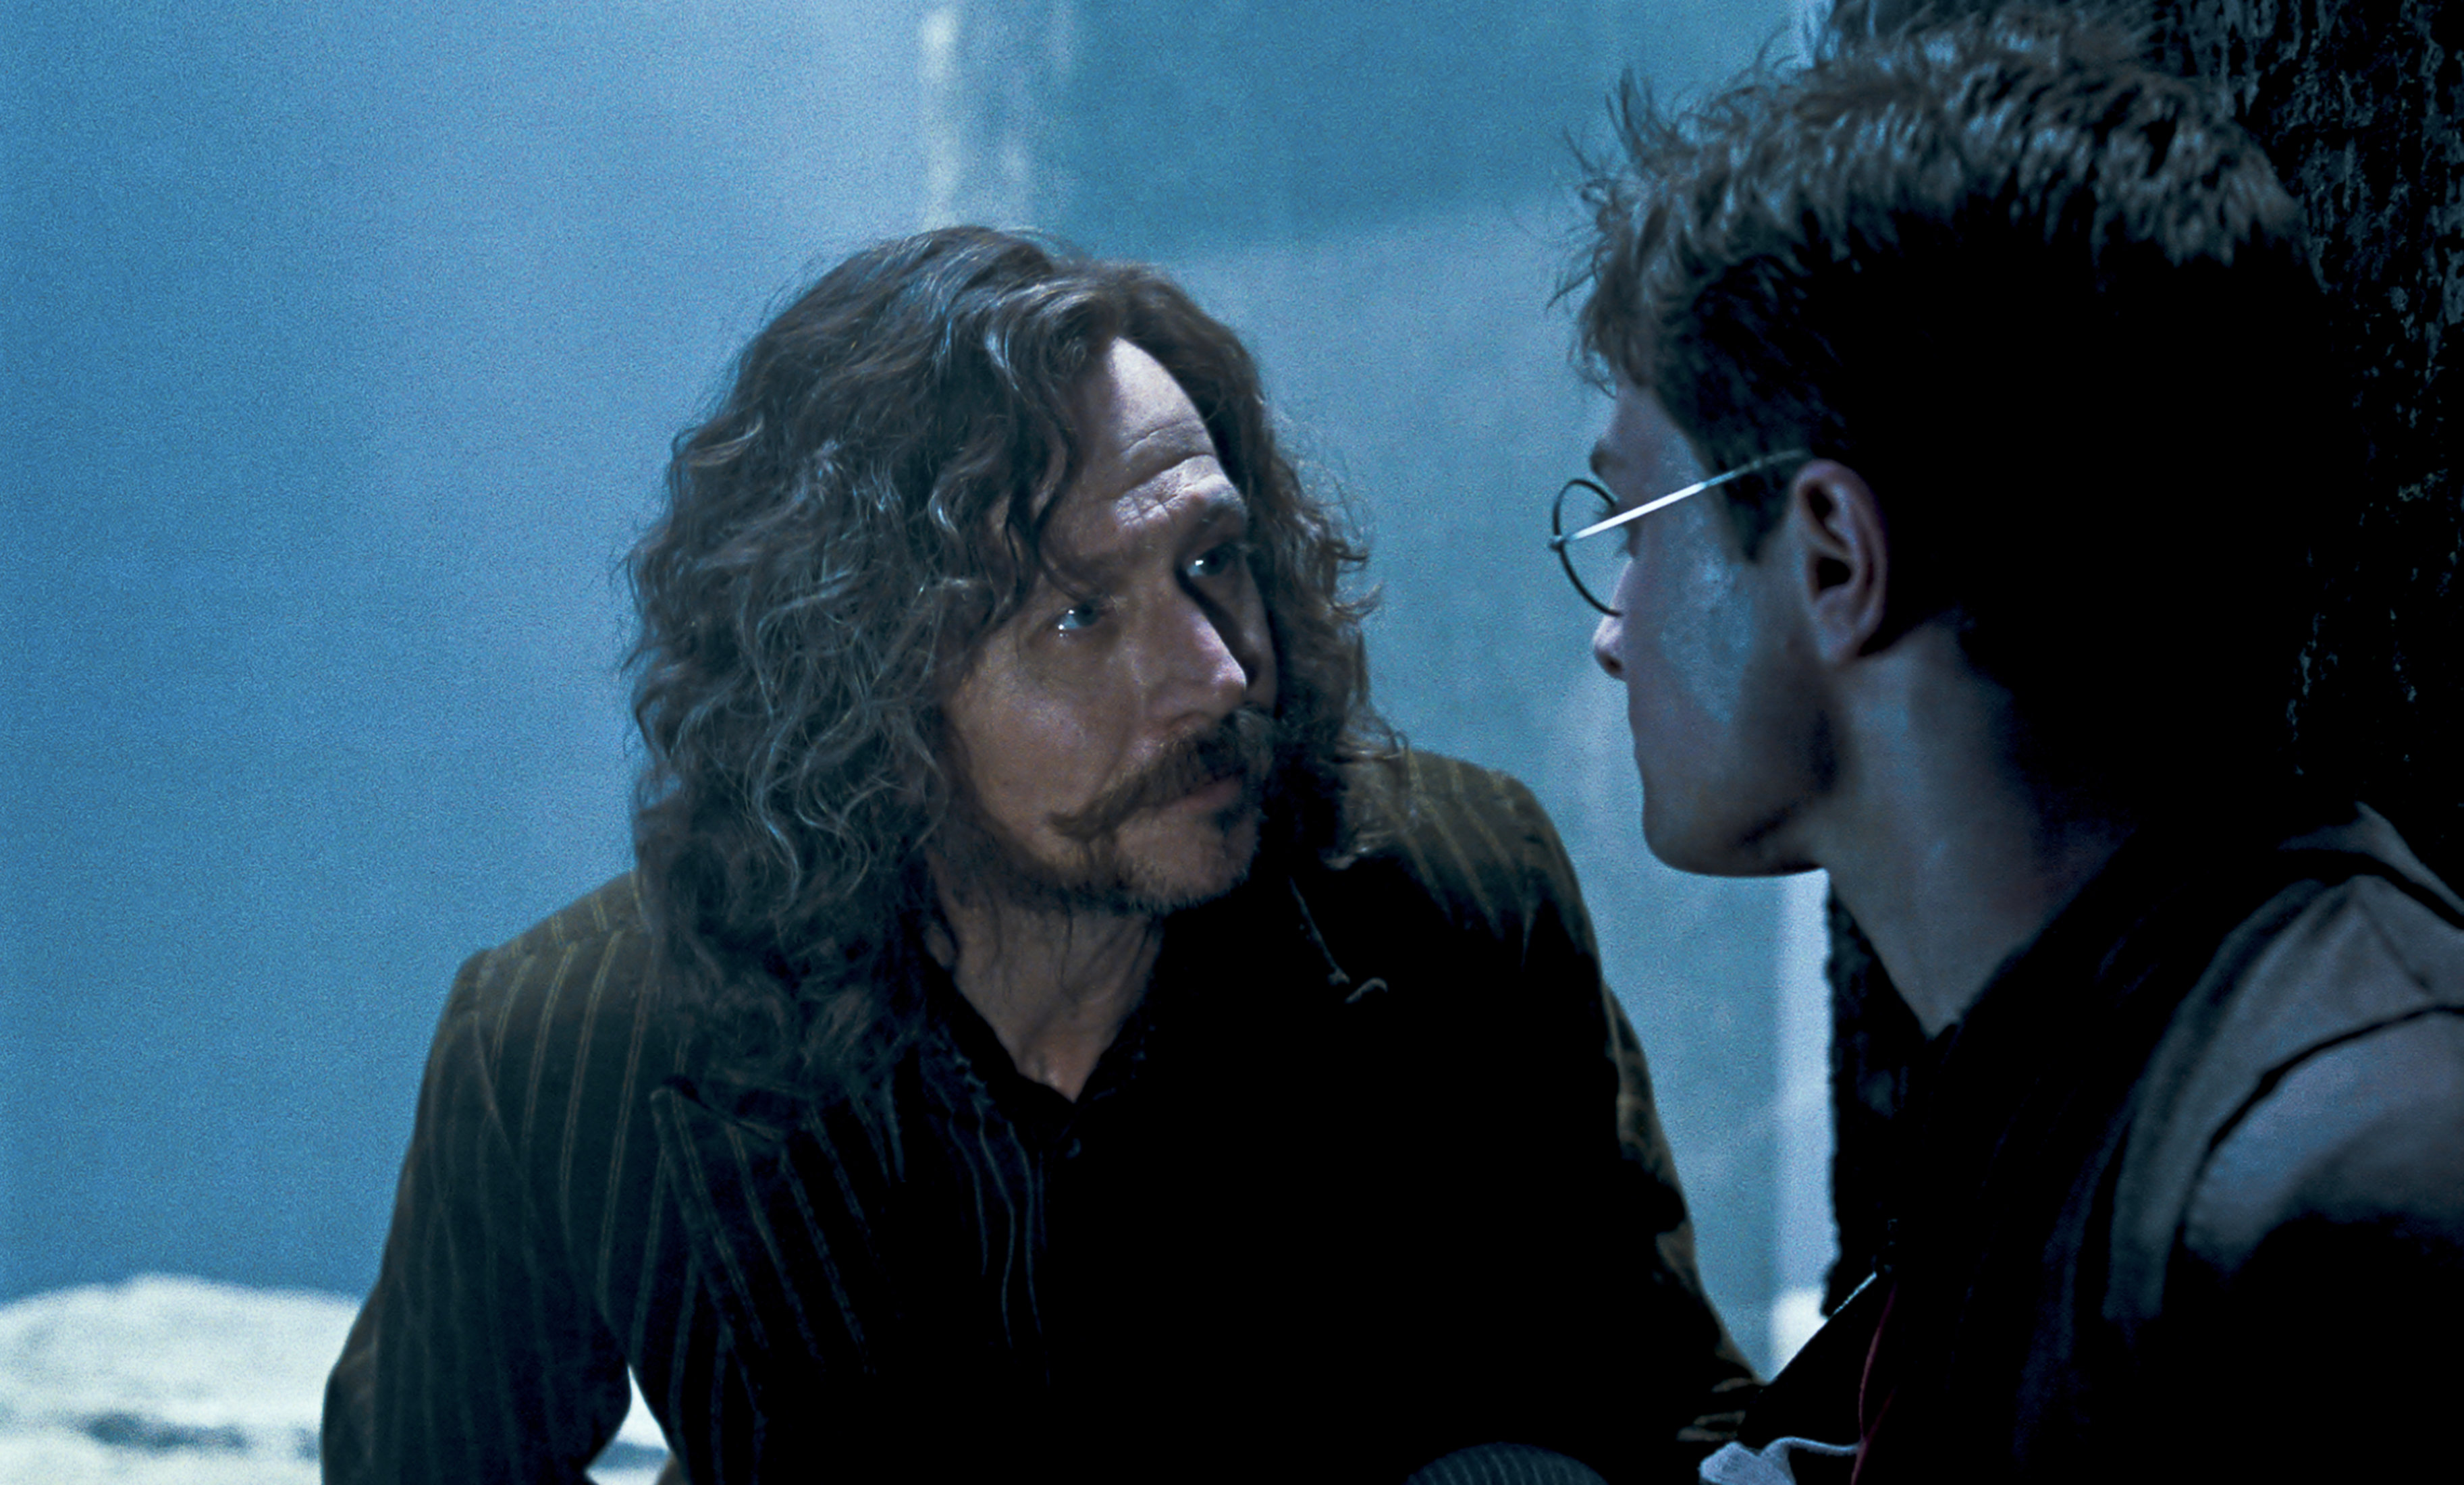 Things you may not have noticed about Sirius Black ...